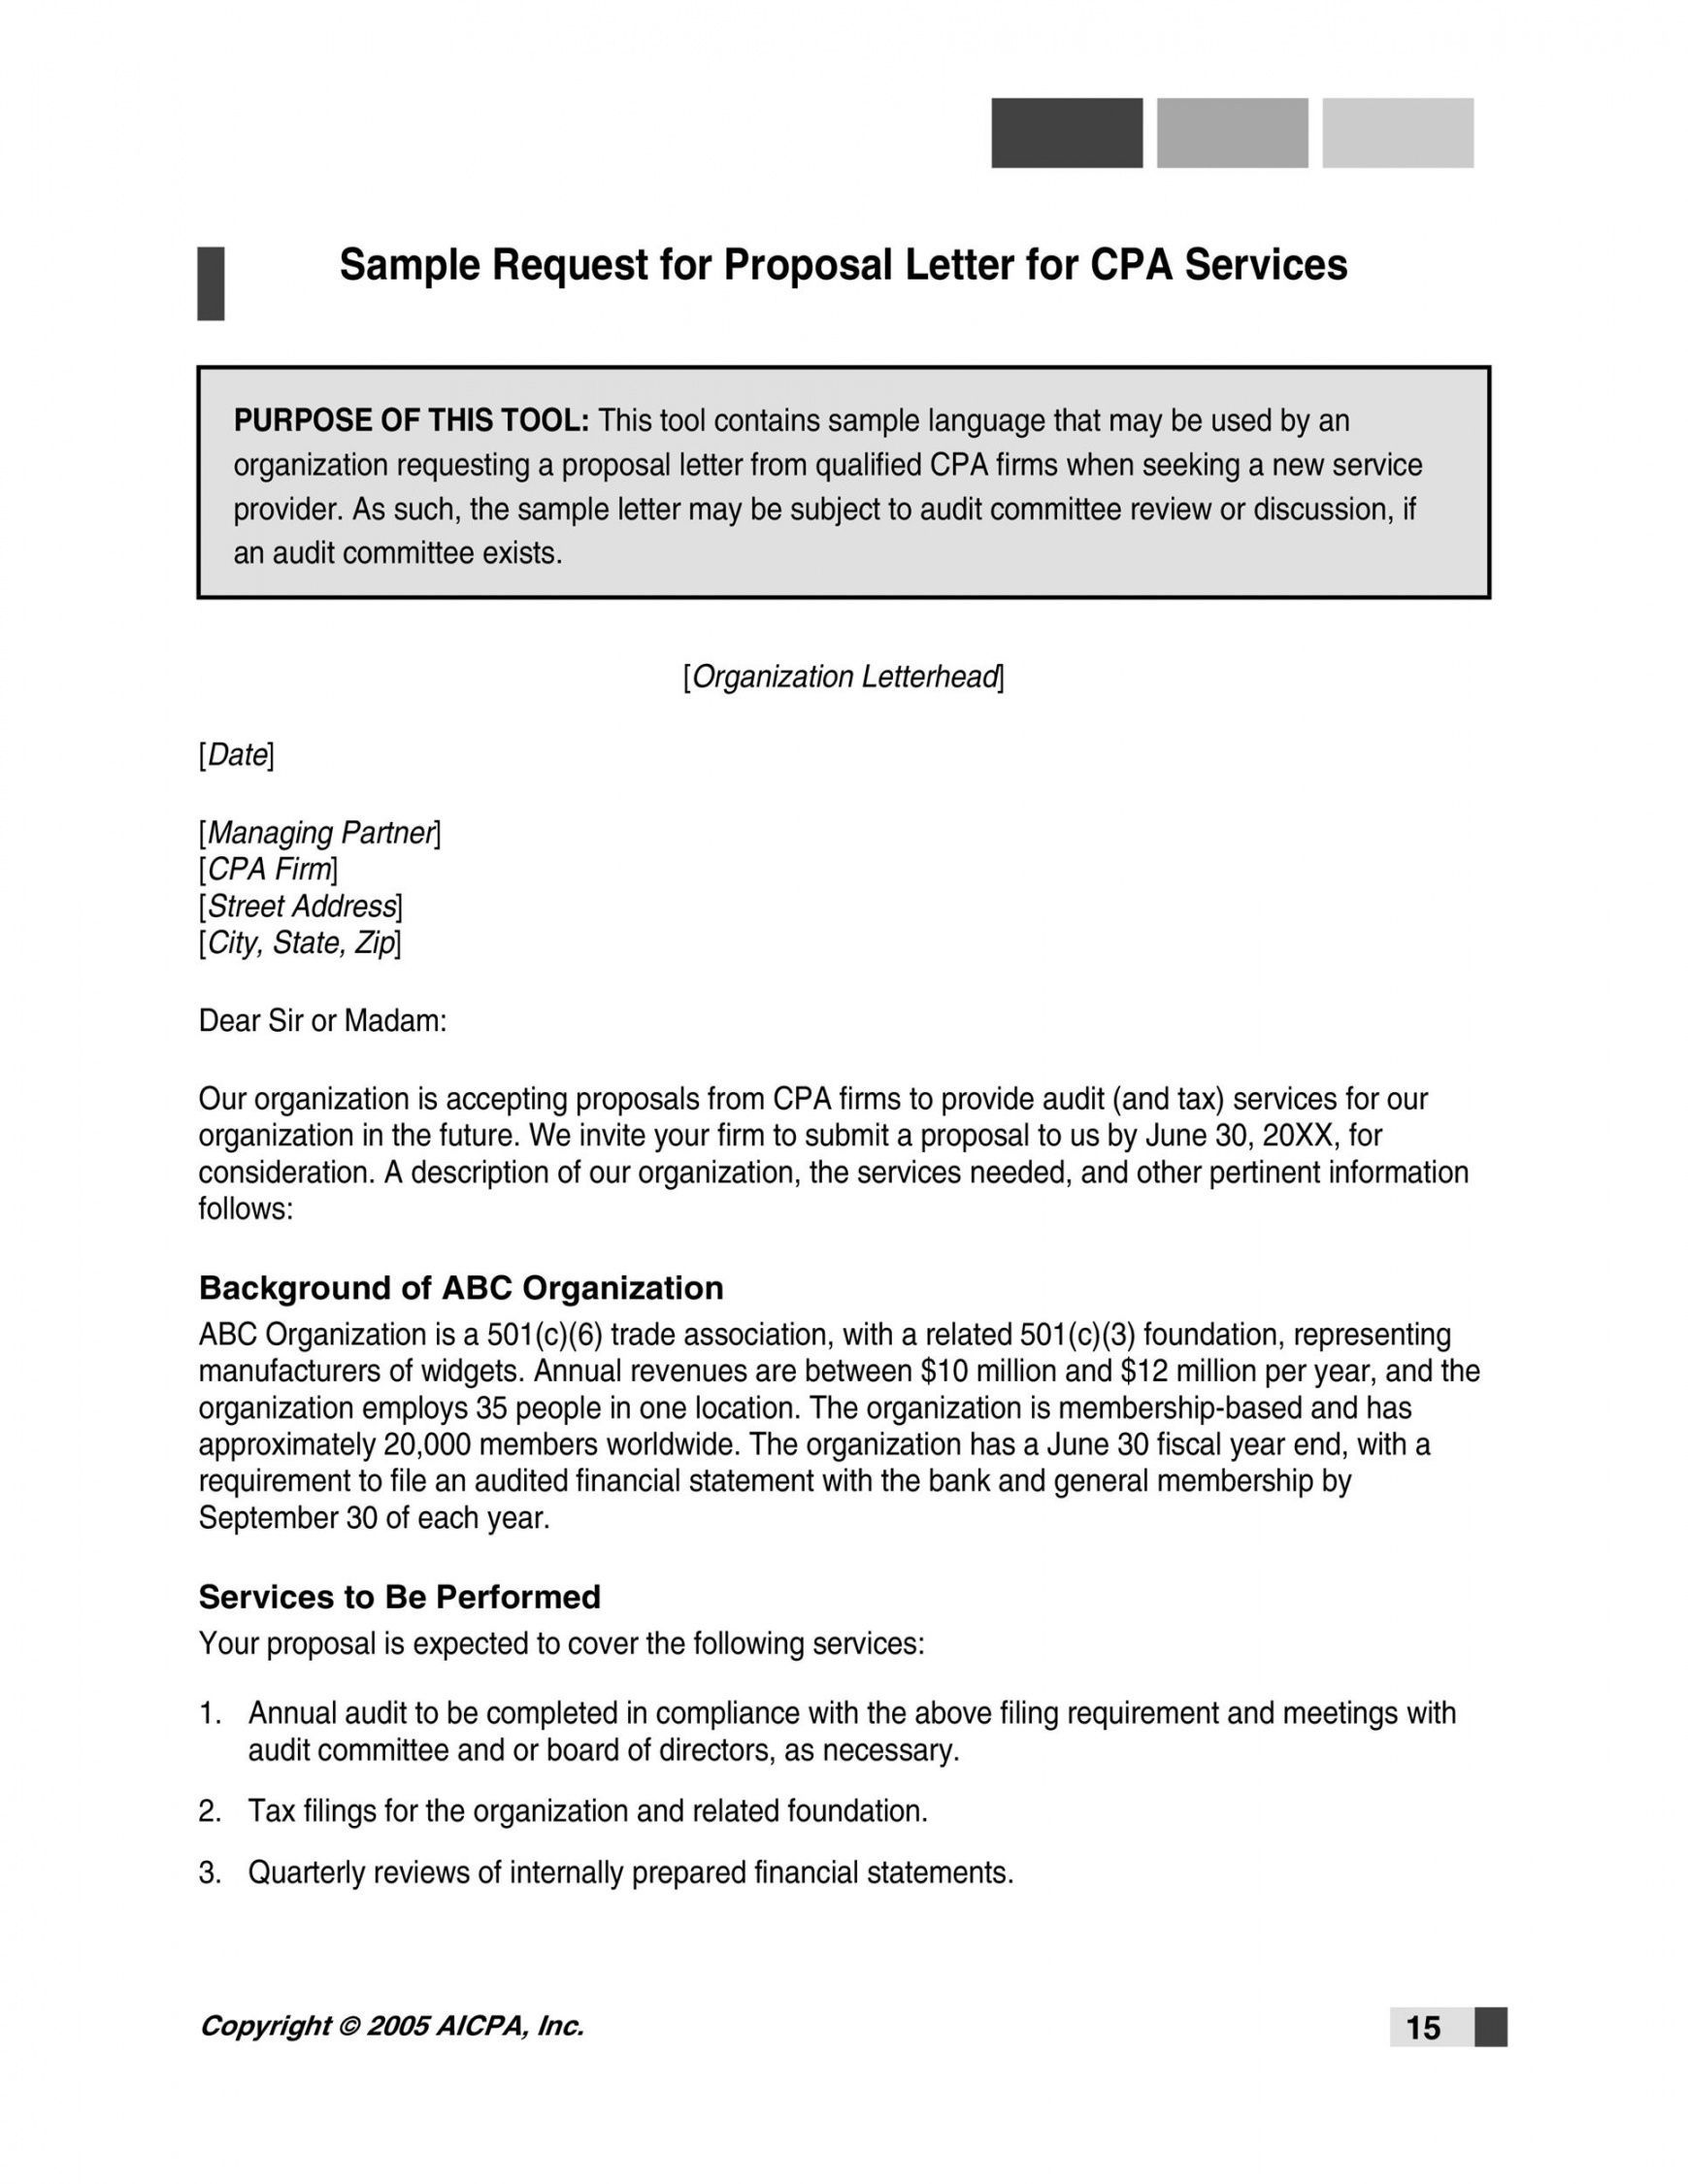 Document Management Proposal Template In 2021 Proposal Letter Request For Proposal Proposal Templates